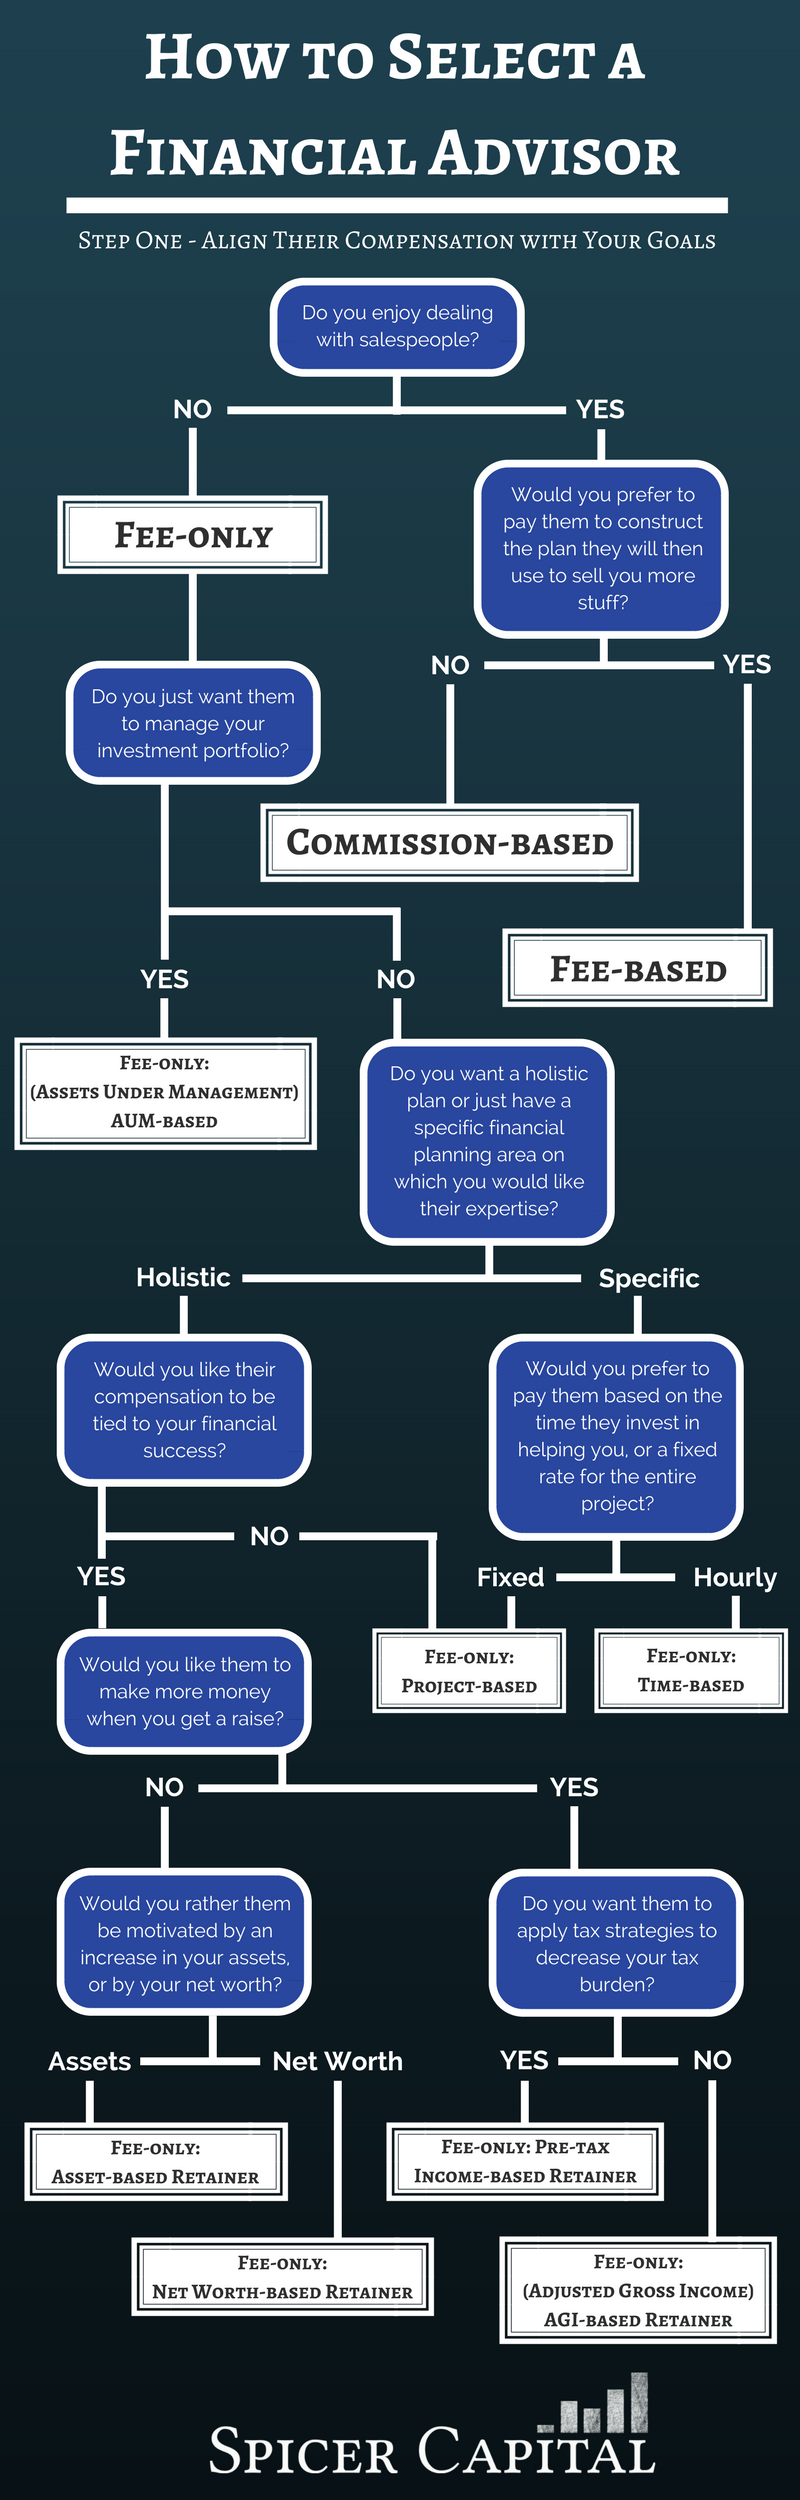 Follow this flow chart to help you choose your financial advisor. Make sure their compensation aligns with your interests.